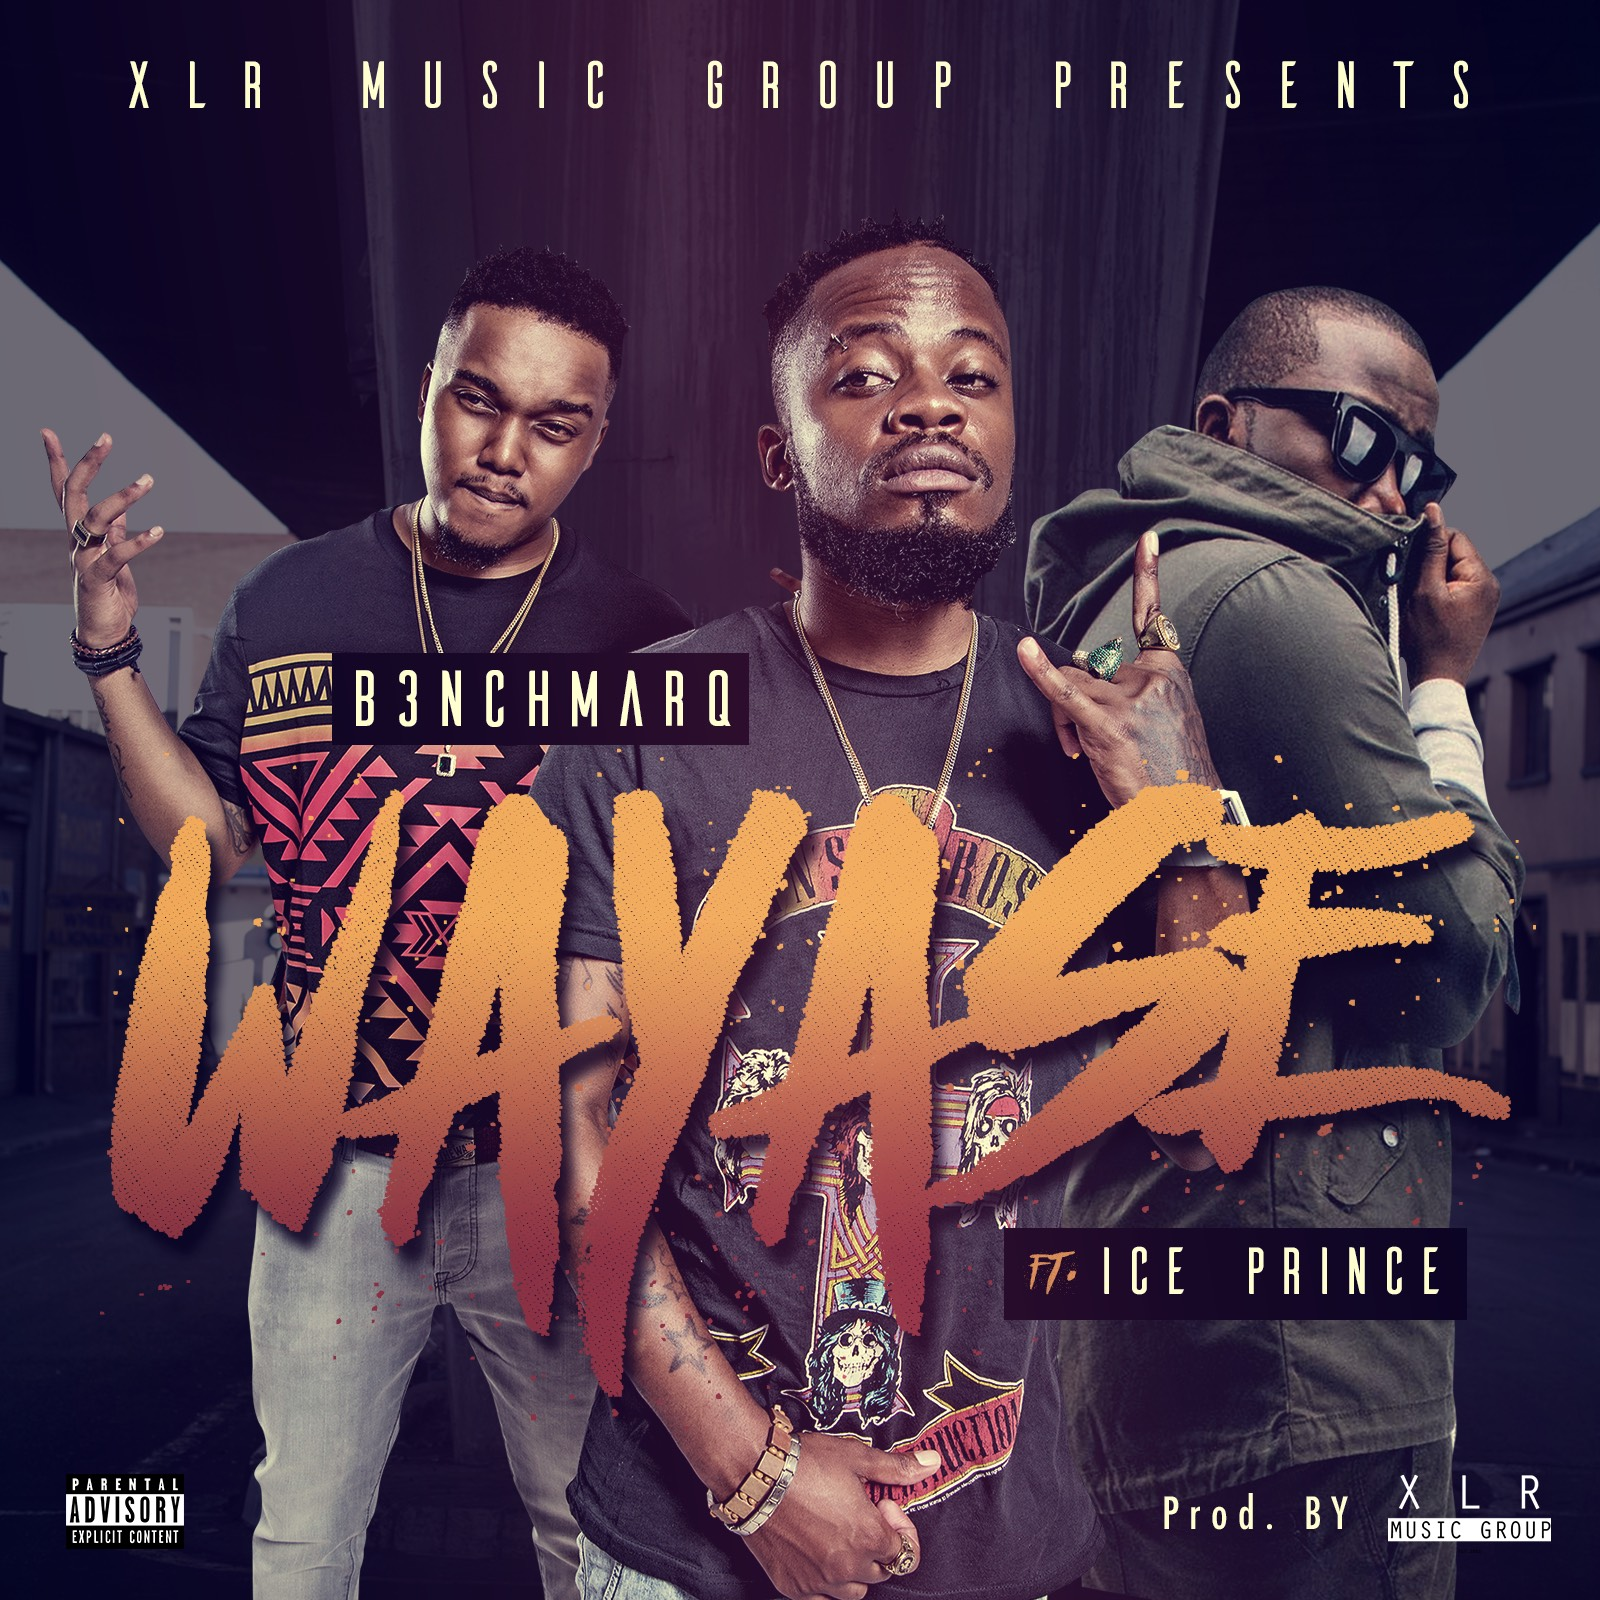 Listen to B3nchMarQ's New 'Wayase' Joint Ft. Ice Prince e1ed15d08042bcac8edab1cbceed6bc1